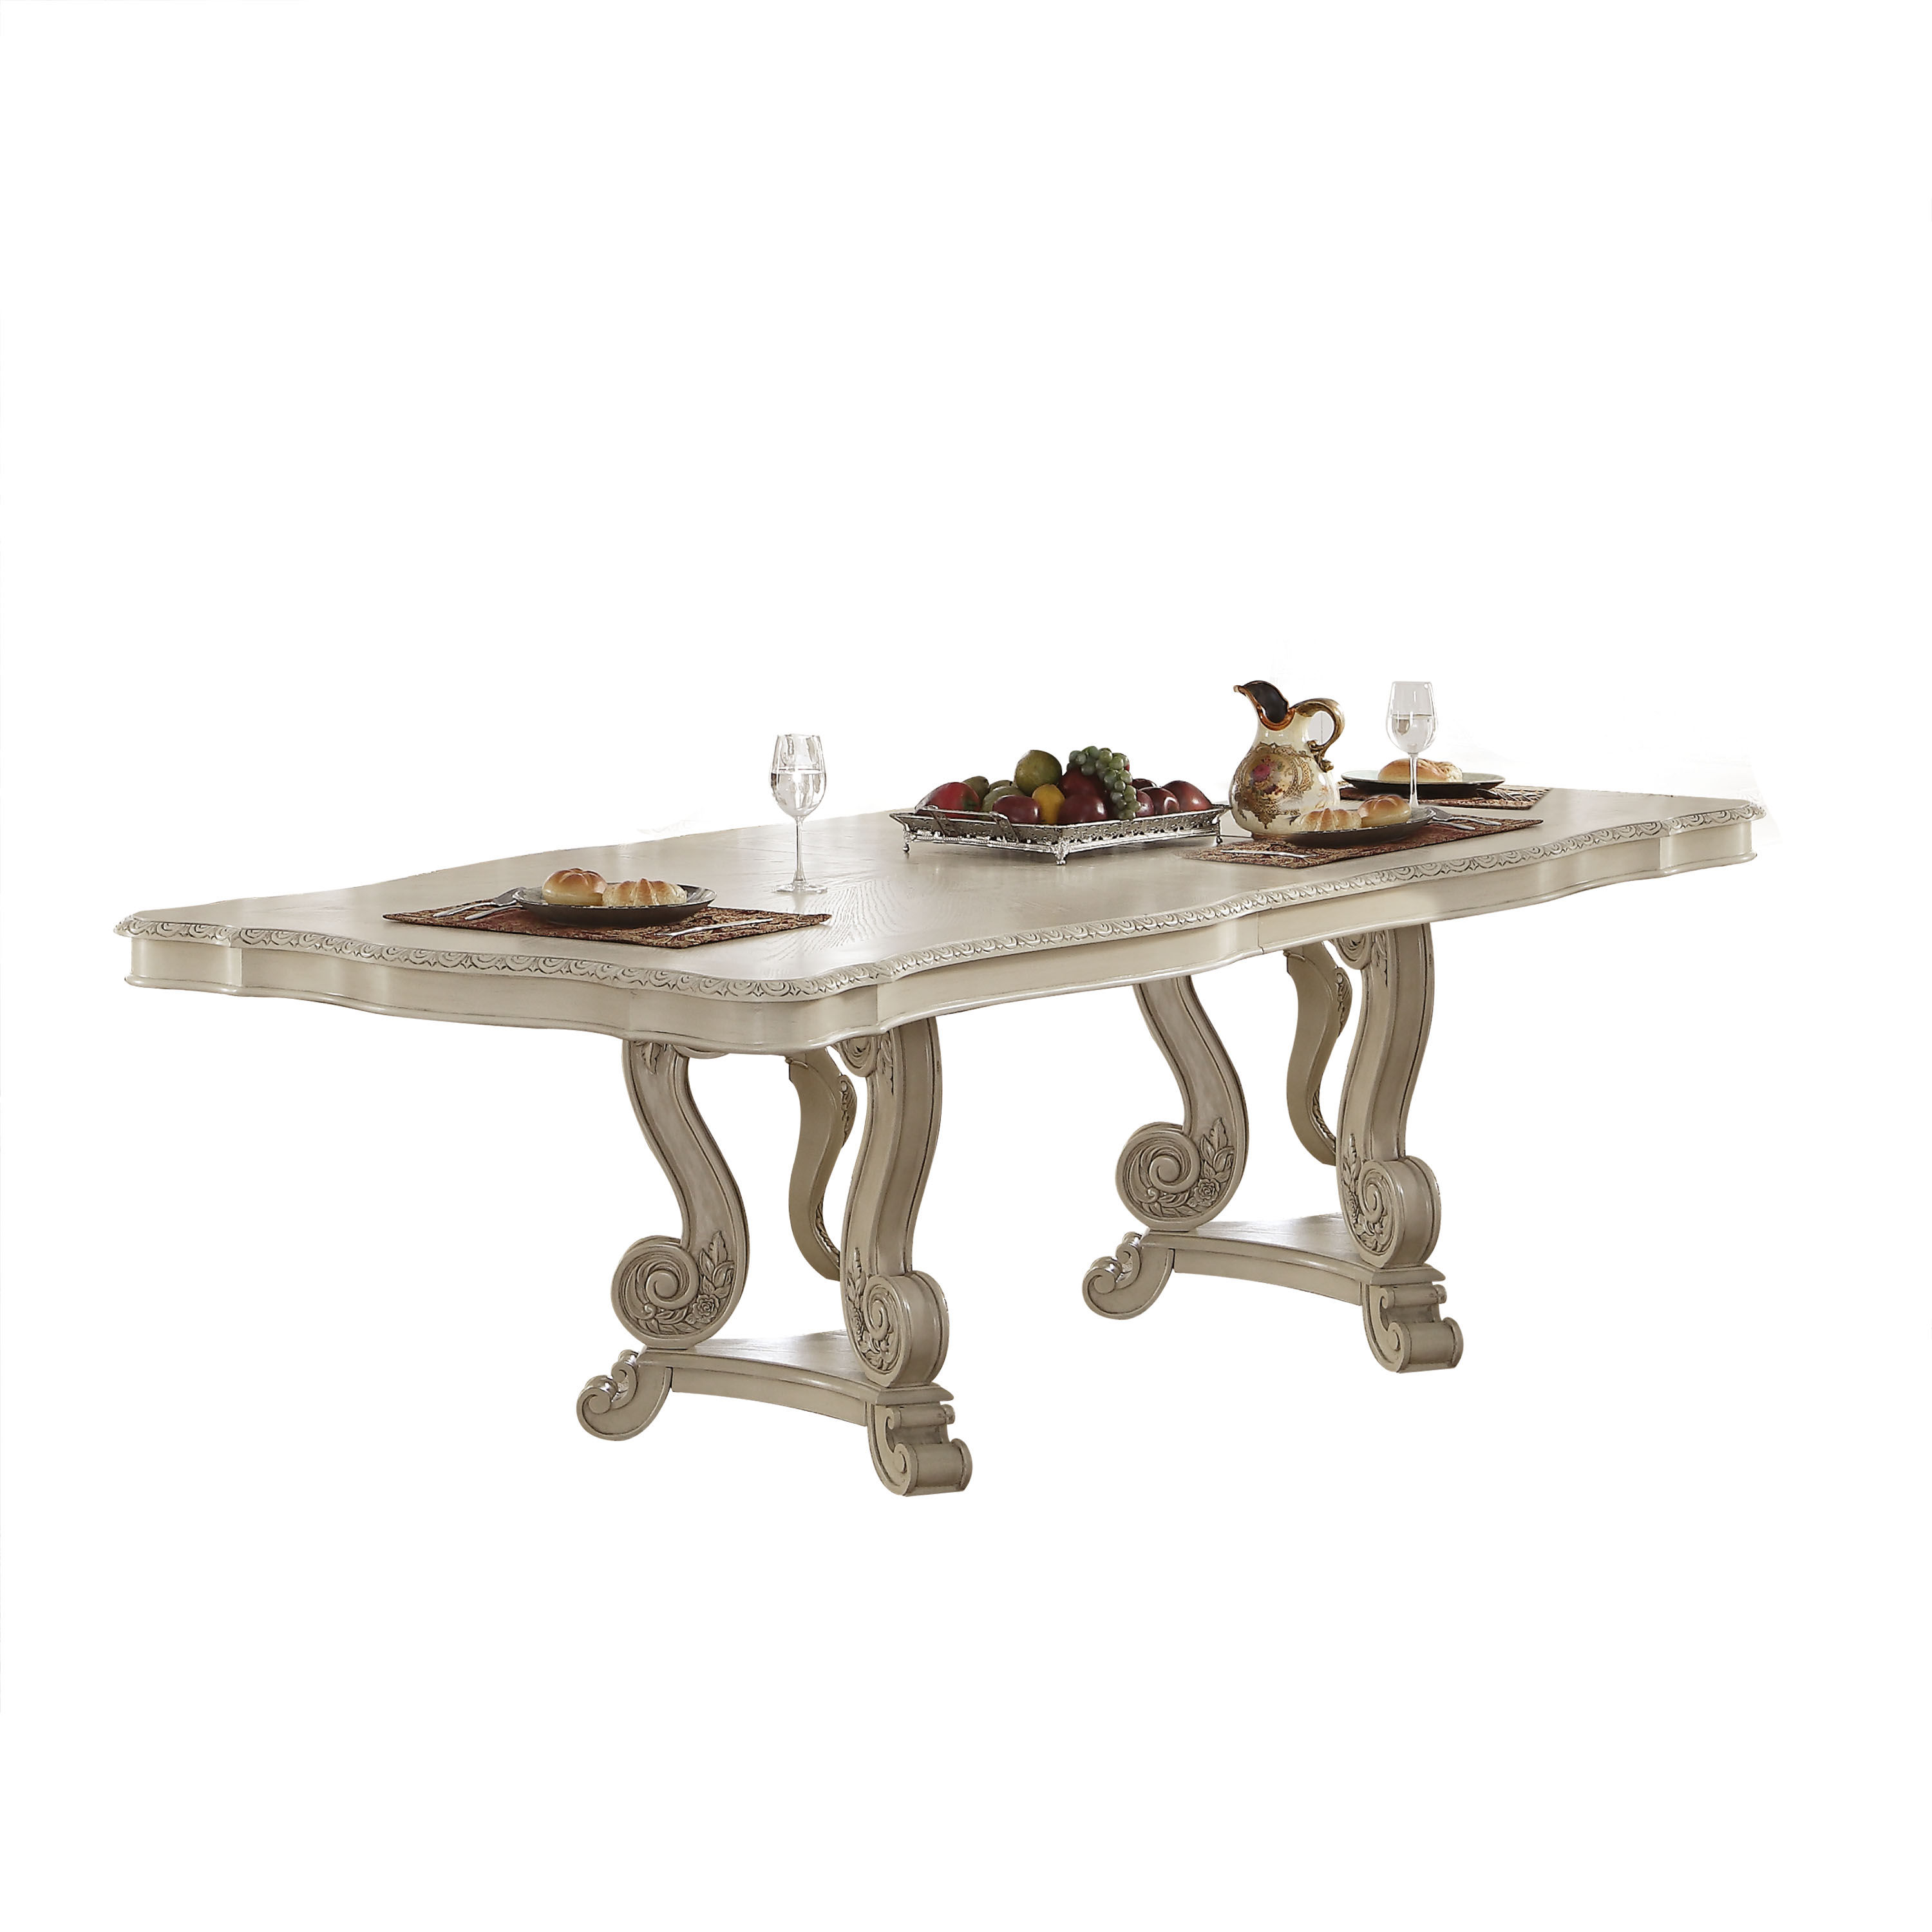 Acme Furniture Ragenardus Antique White Double Pedestal Dining Table